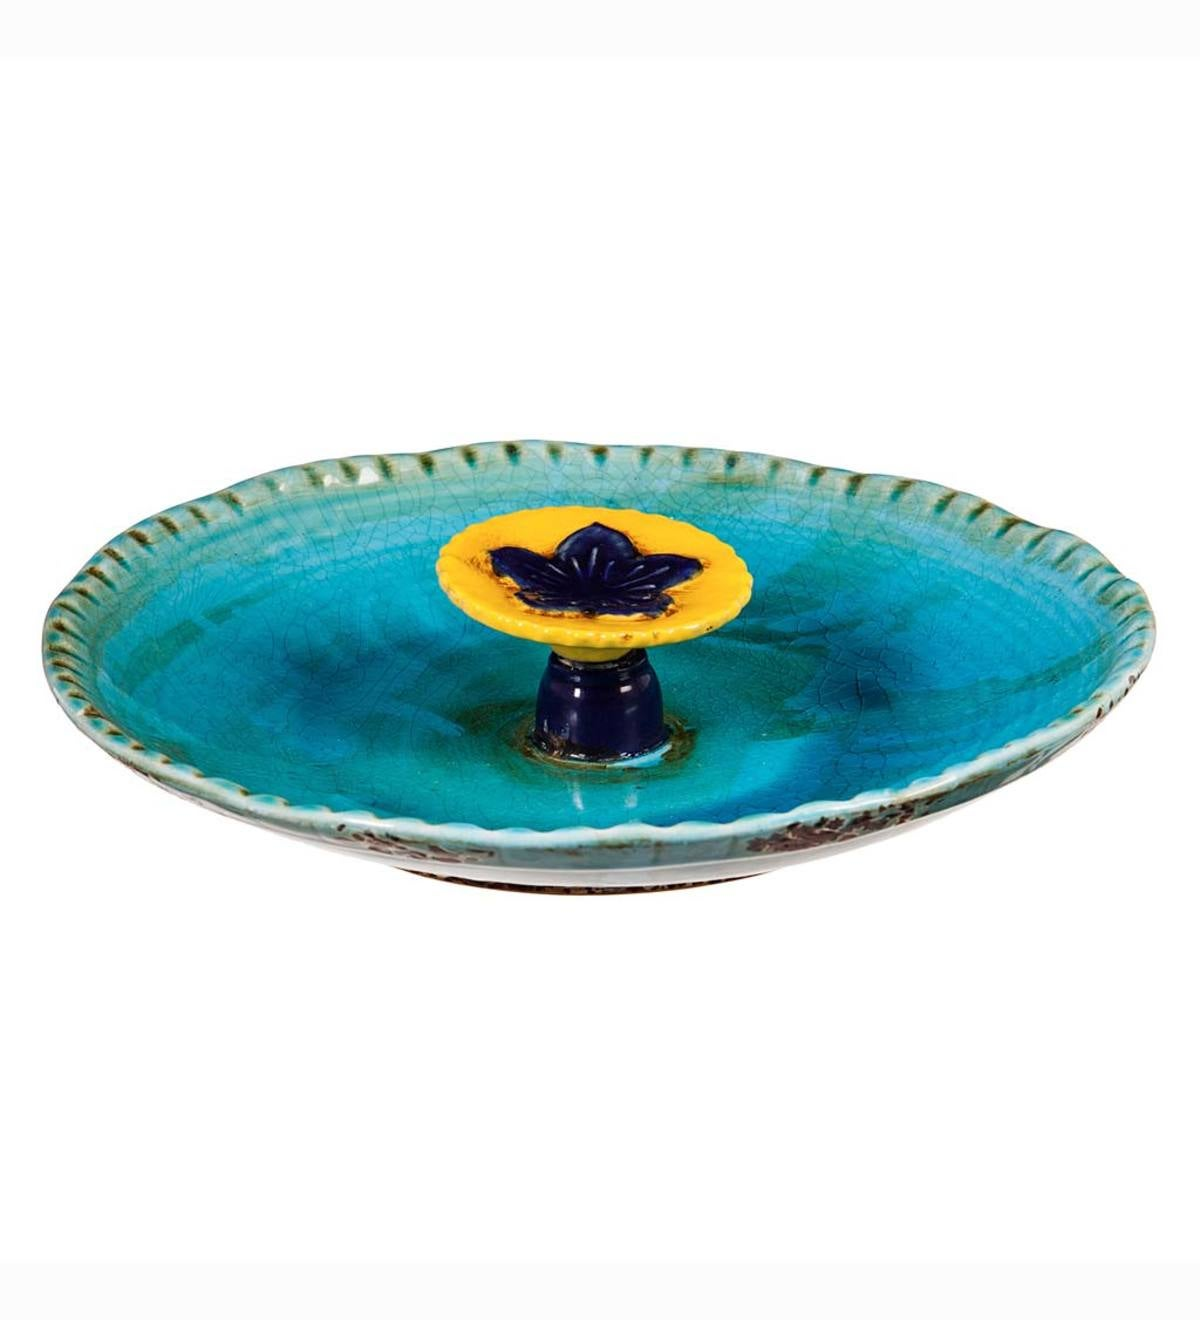 Colored Flower Ceramic Bee Bath - Turquoise